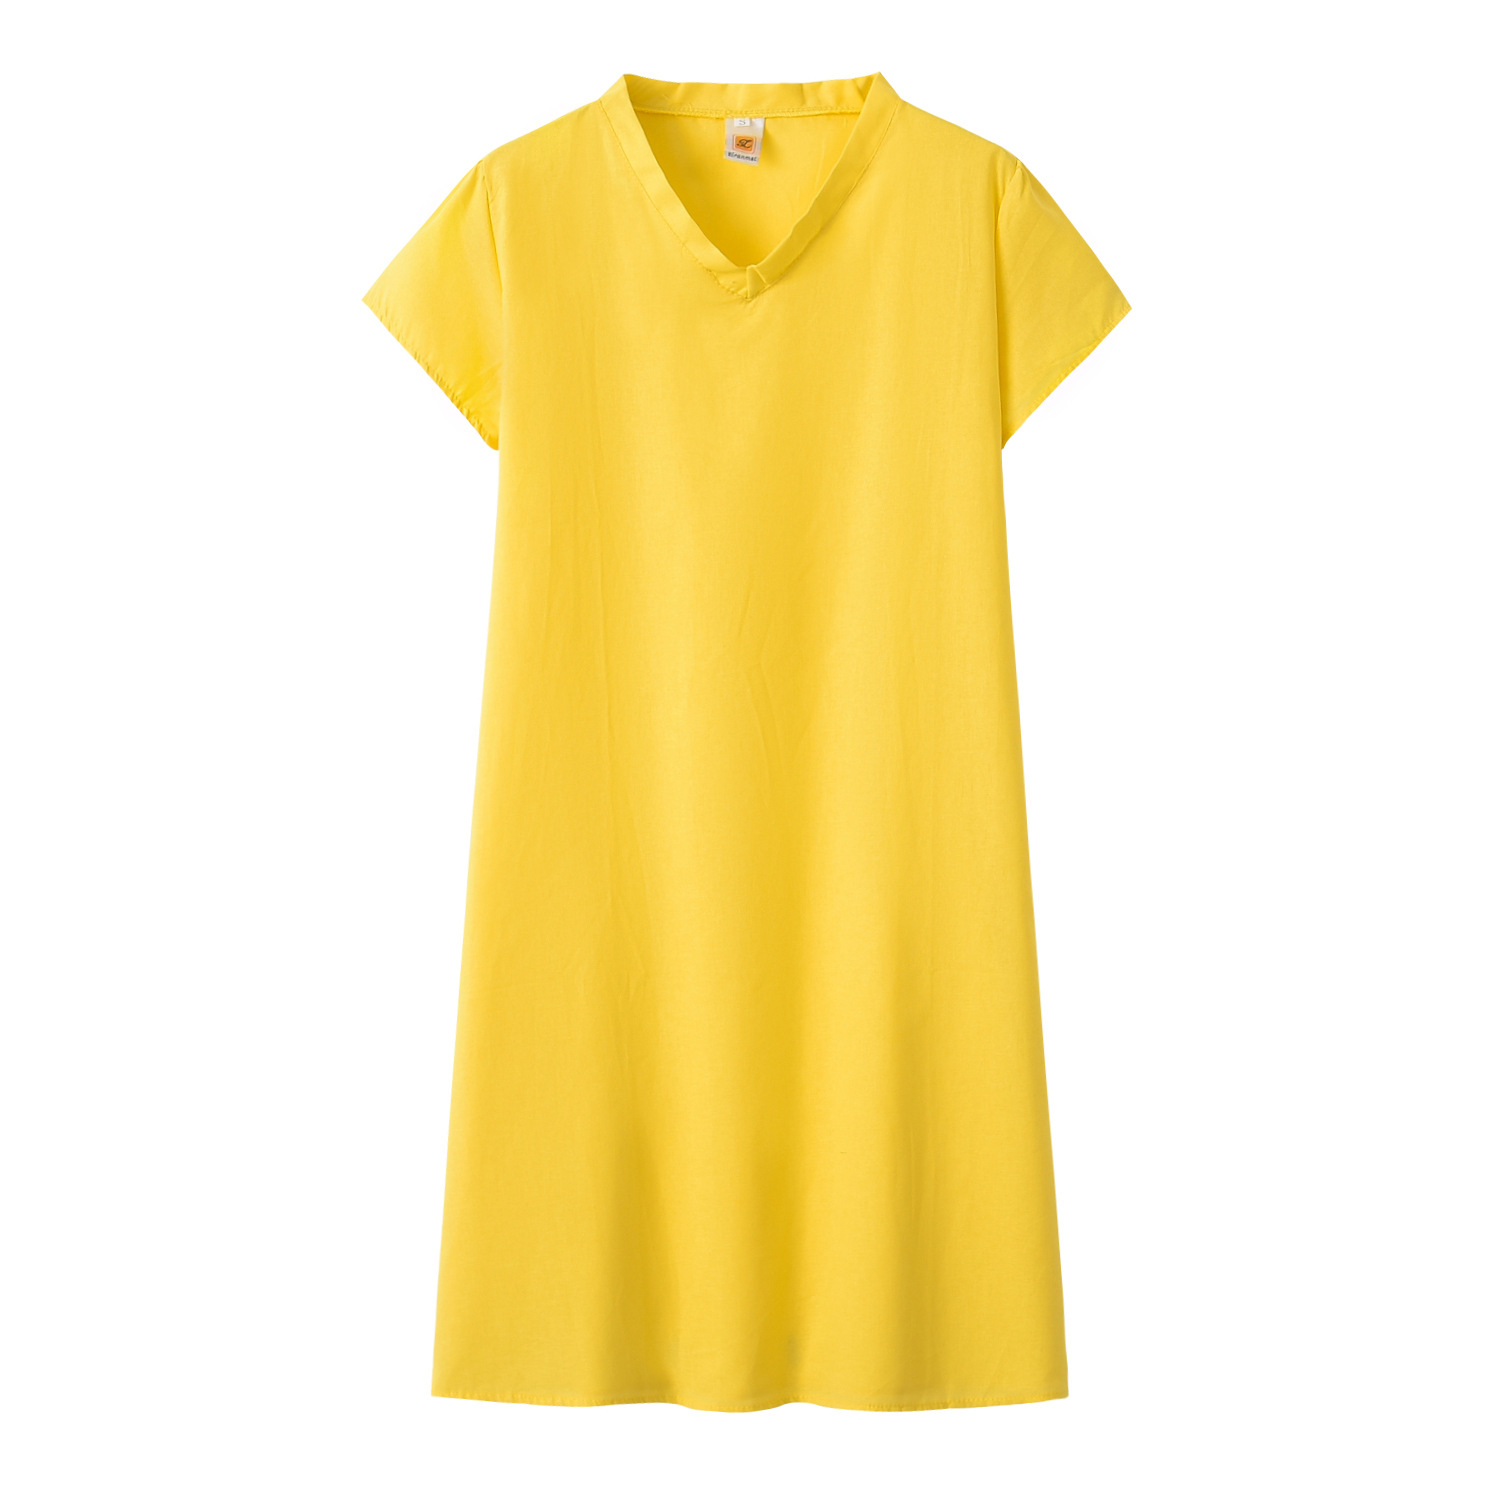 2019 AliExpress Wish Amazon <font><b>EBay</b></font> Eleven Color Large Size Solid Color Short Sleeve V-neck Short-sleeve Dress image